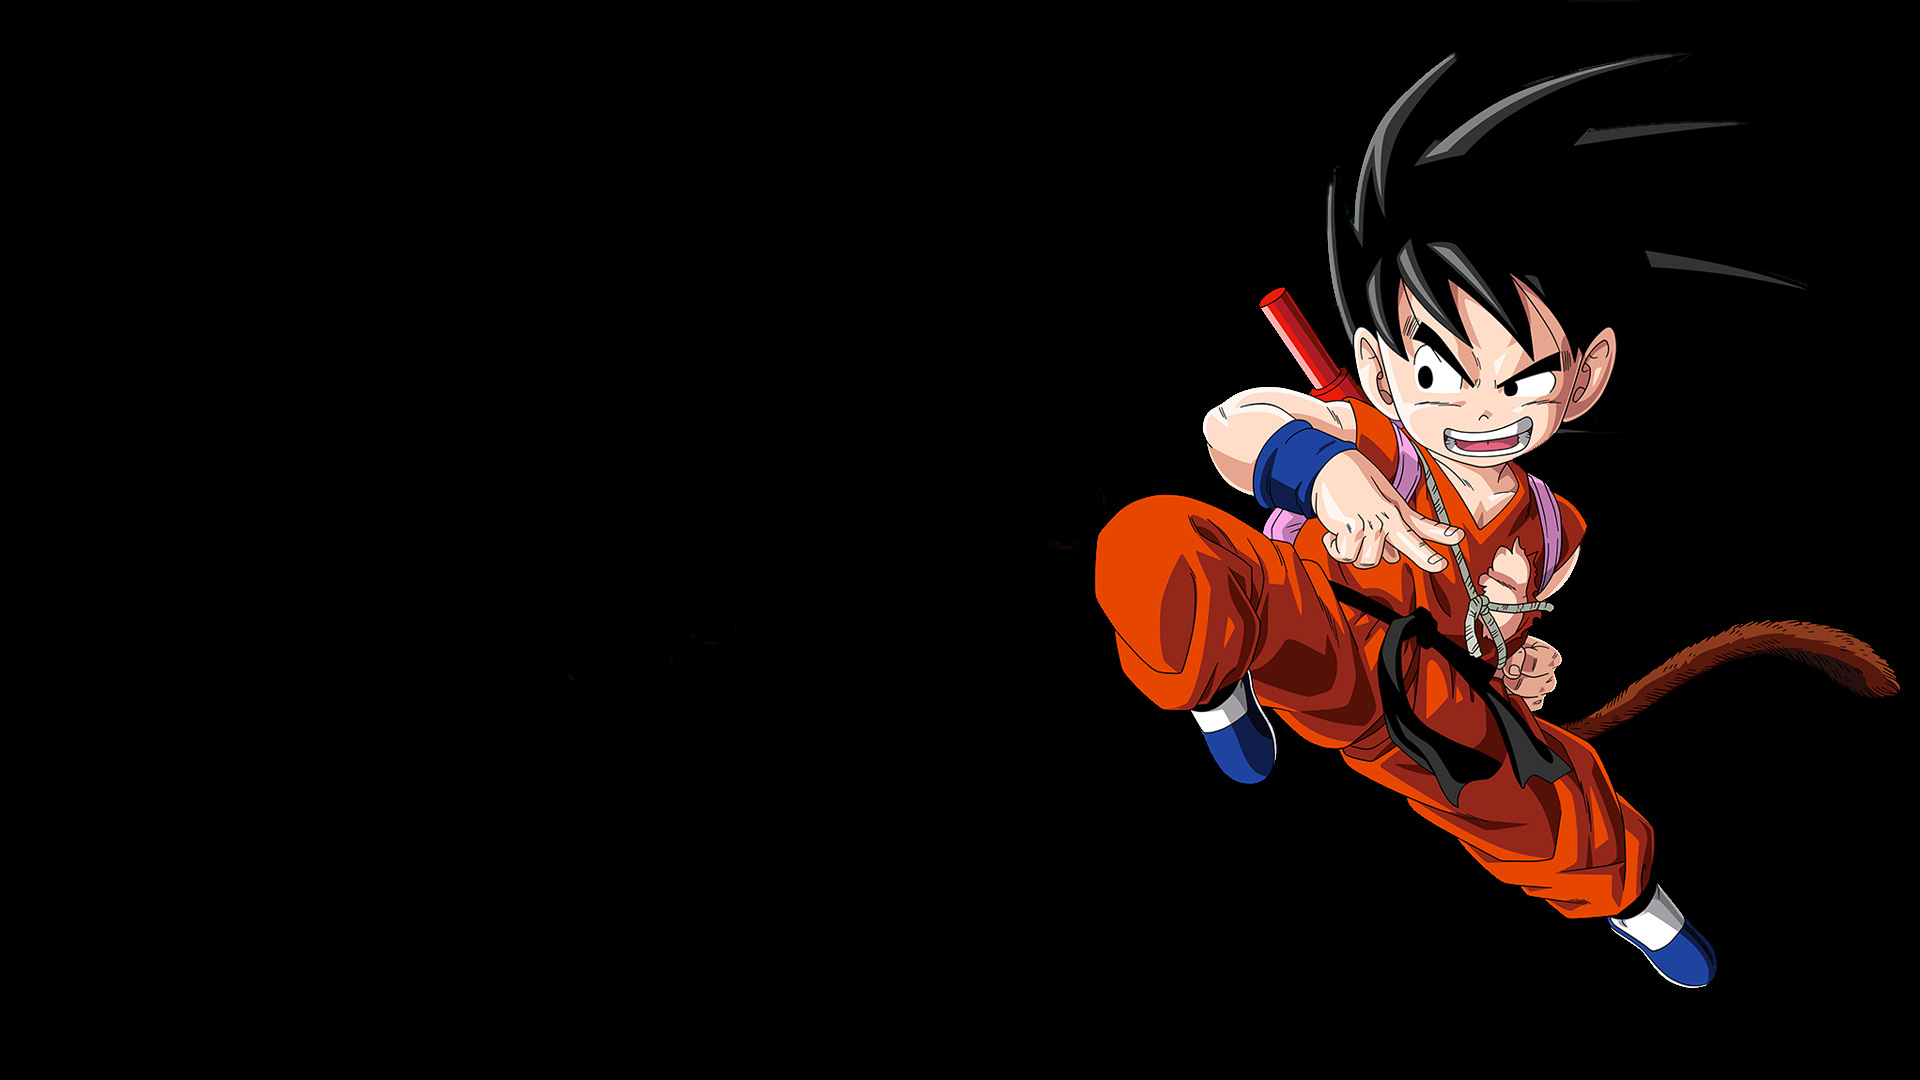 Dragon ball z wallpaper 23 of 49 son goku childhood hd - Dragon ball super background music mp3 download ...